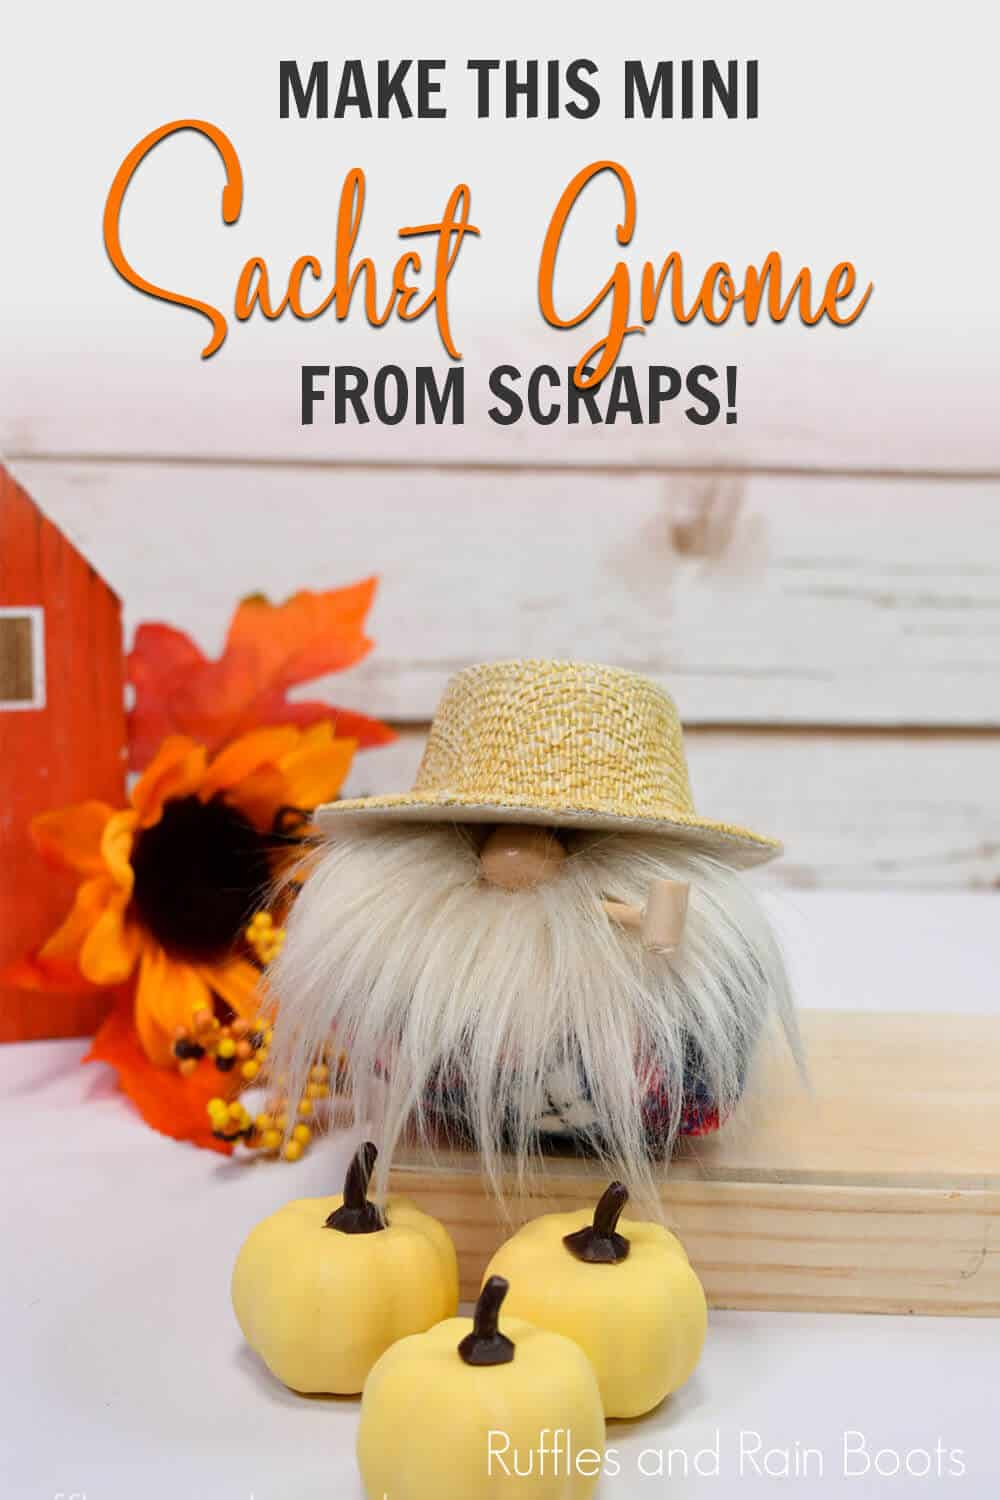 quick gnome craft made from scraps with text which reads make this mini sachet gnome from scraps